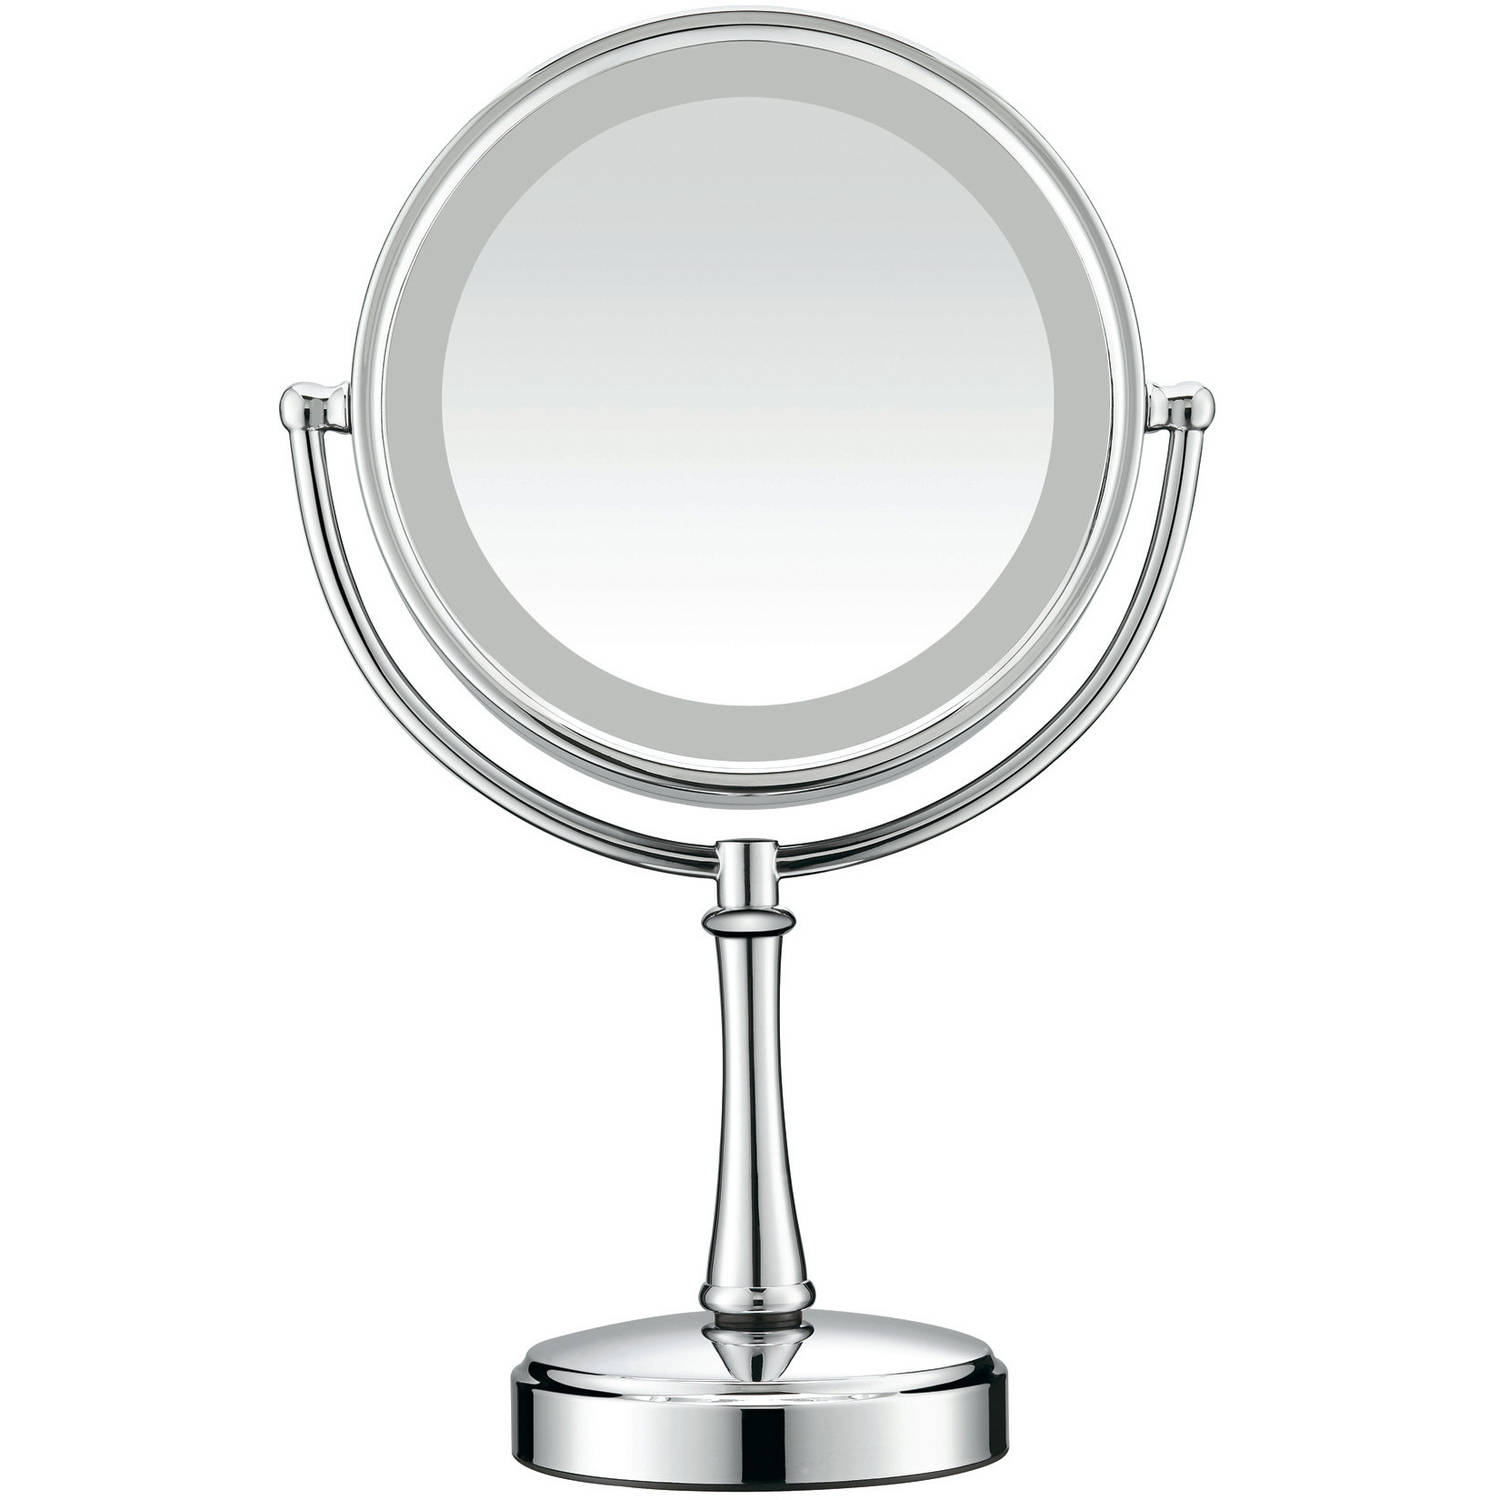 Conair Light Bulbs: Conair Touch Control Double-Sided Lighted Satin Nickel Mirror - Walmart.com,Lighting